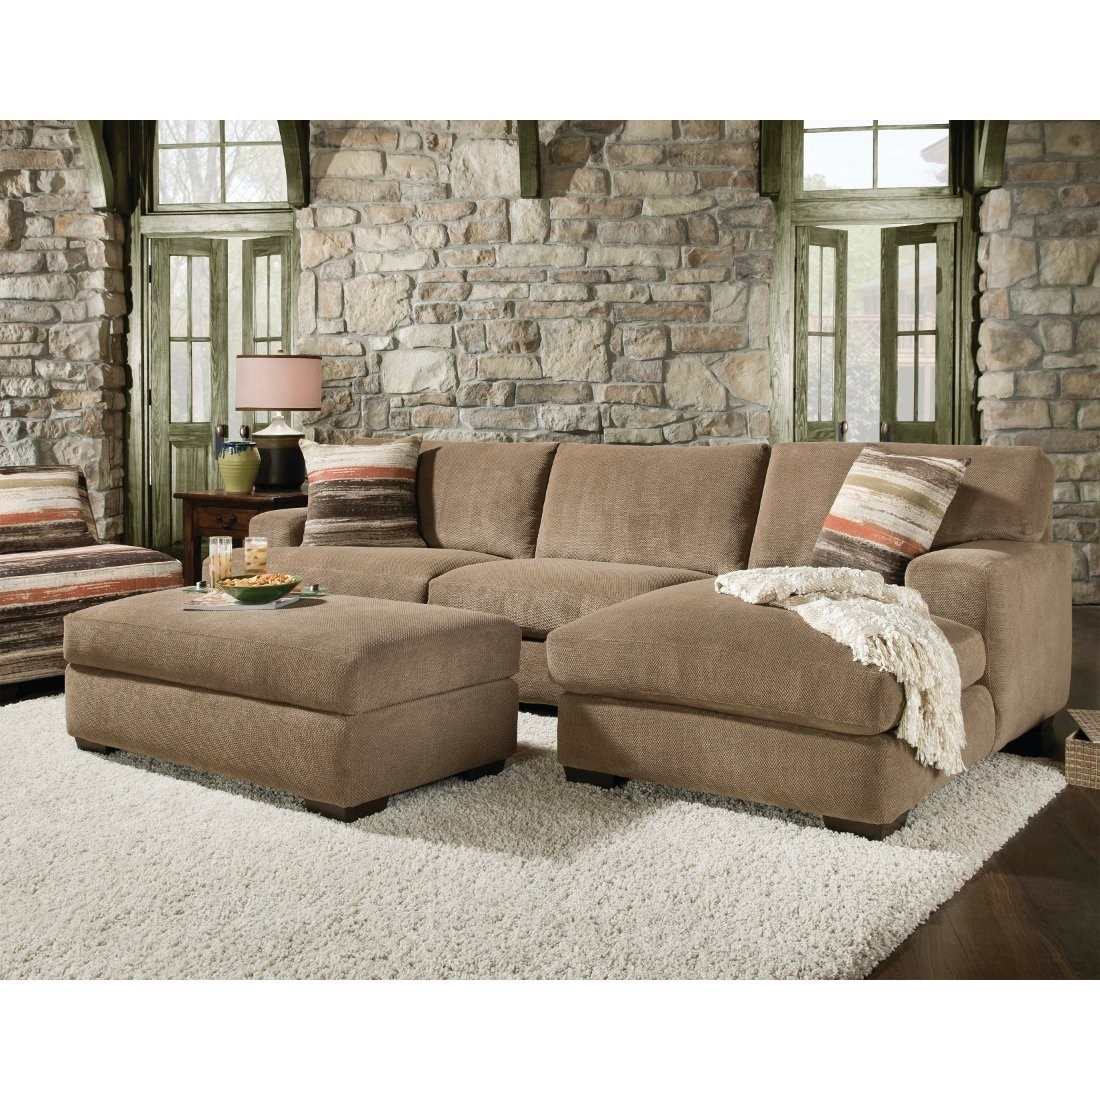 Beautiful Sectional Sofa With Chaise And Ottoman Pictures For Sectional Sofas With Chaise Lounge And Ottoman (View 6 of 15)